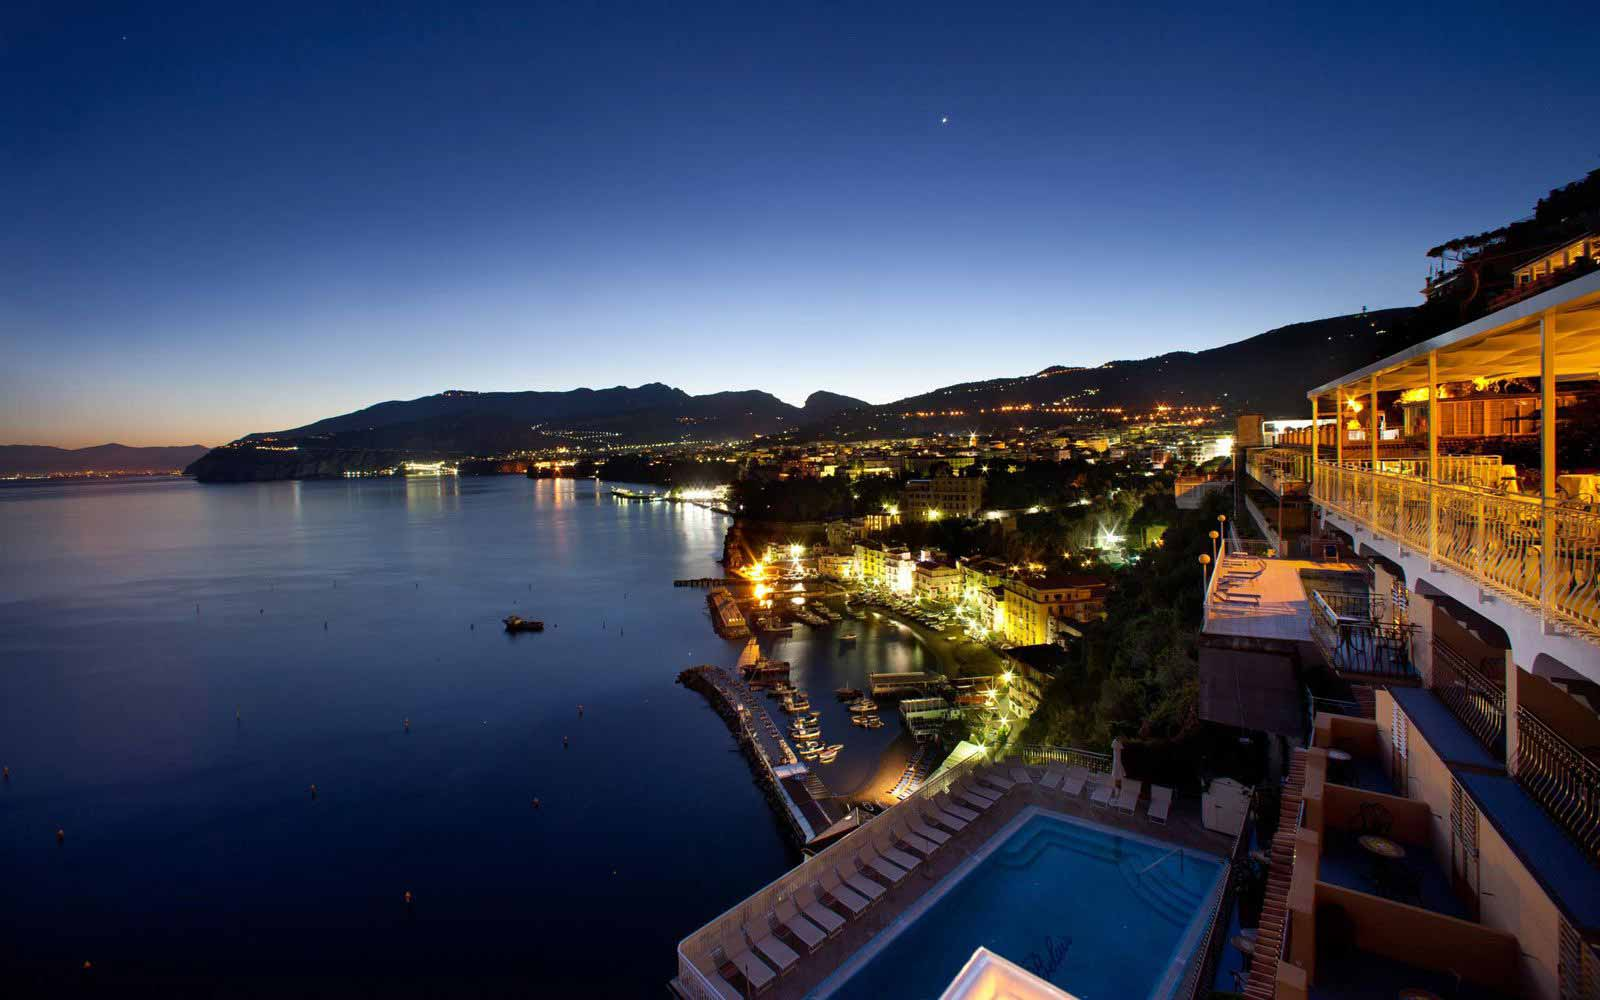 Views across the bay of Sorrento at night from Hotel Belair